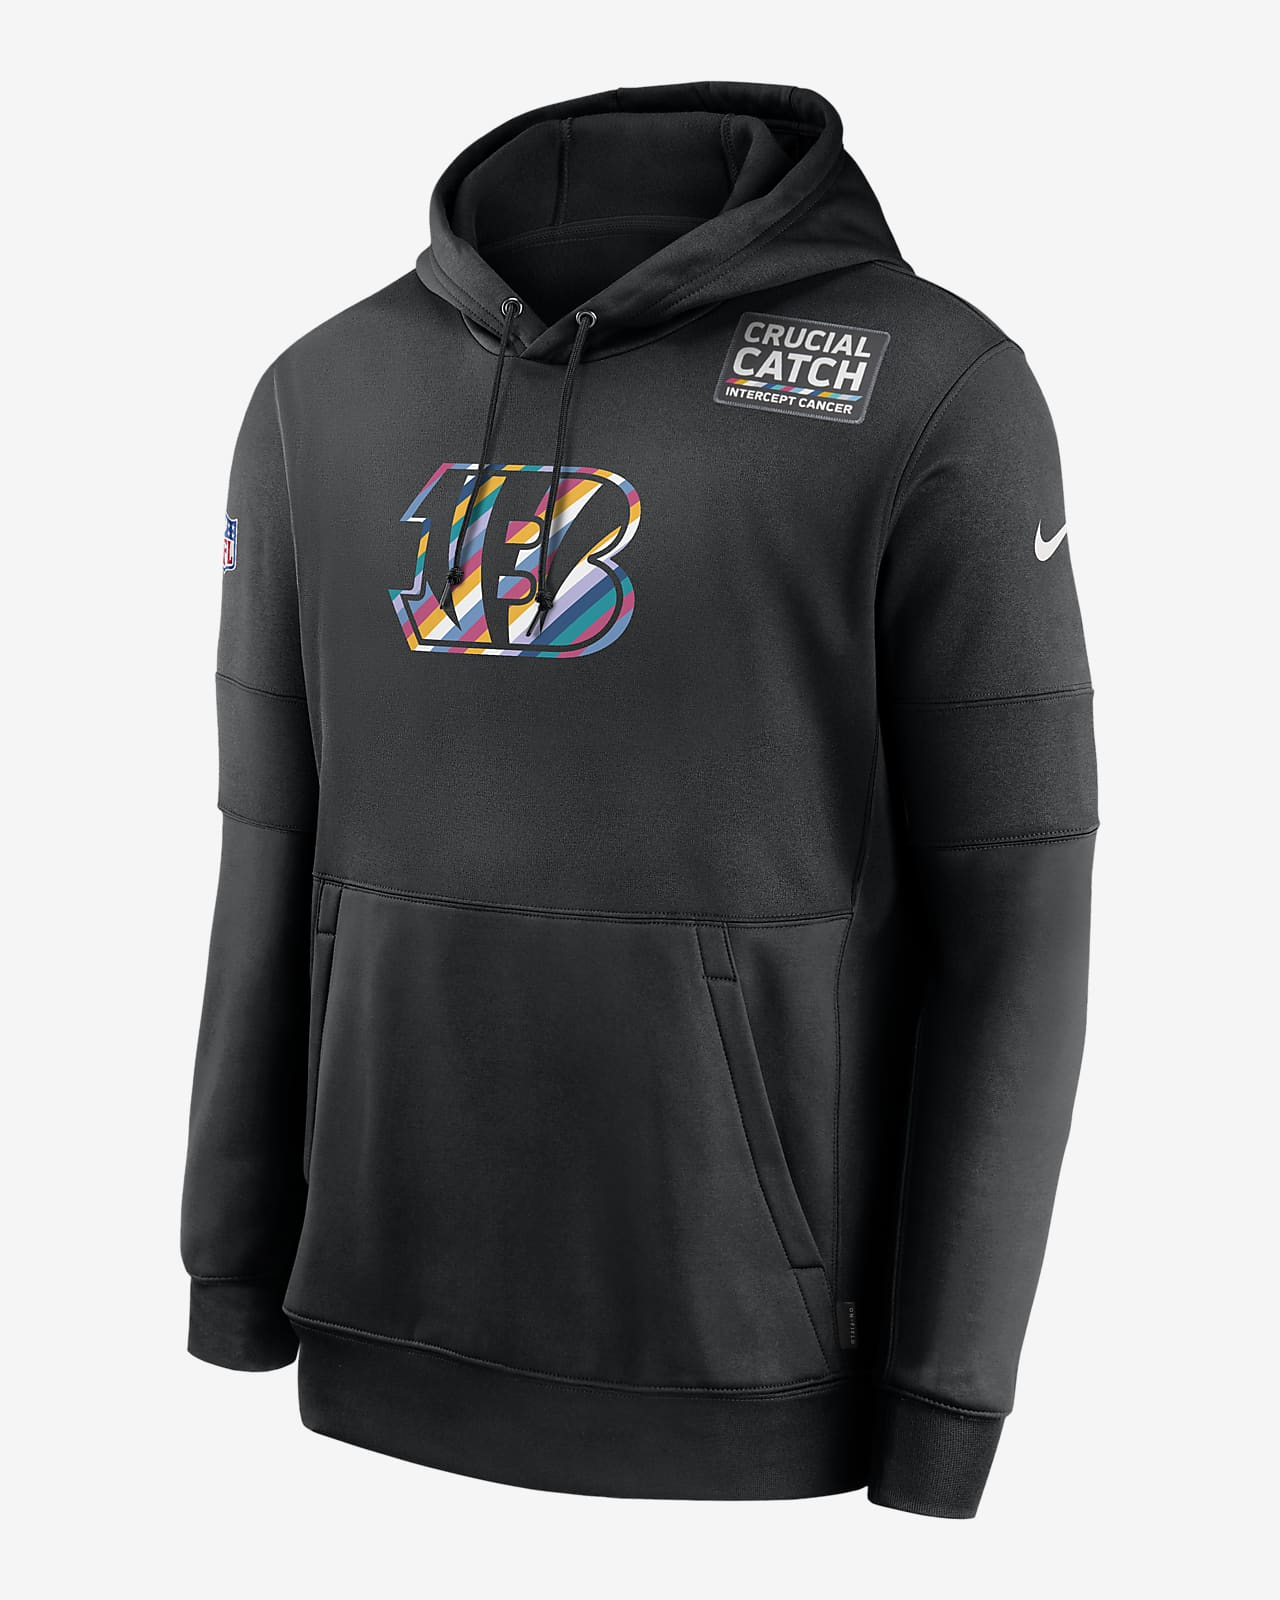 Nike Therma Crucial Catch (NFL Bengals) Men's Hoodie